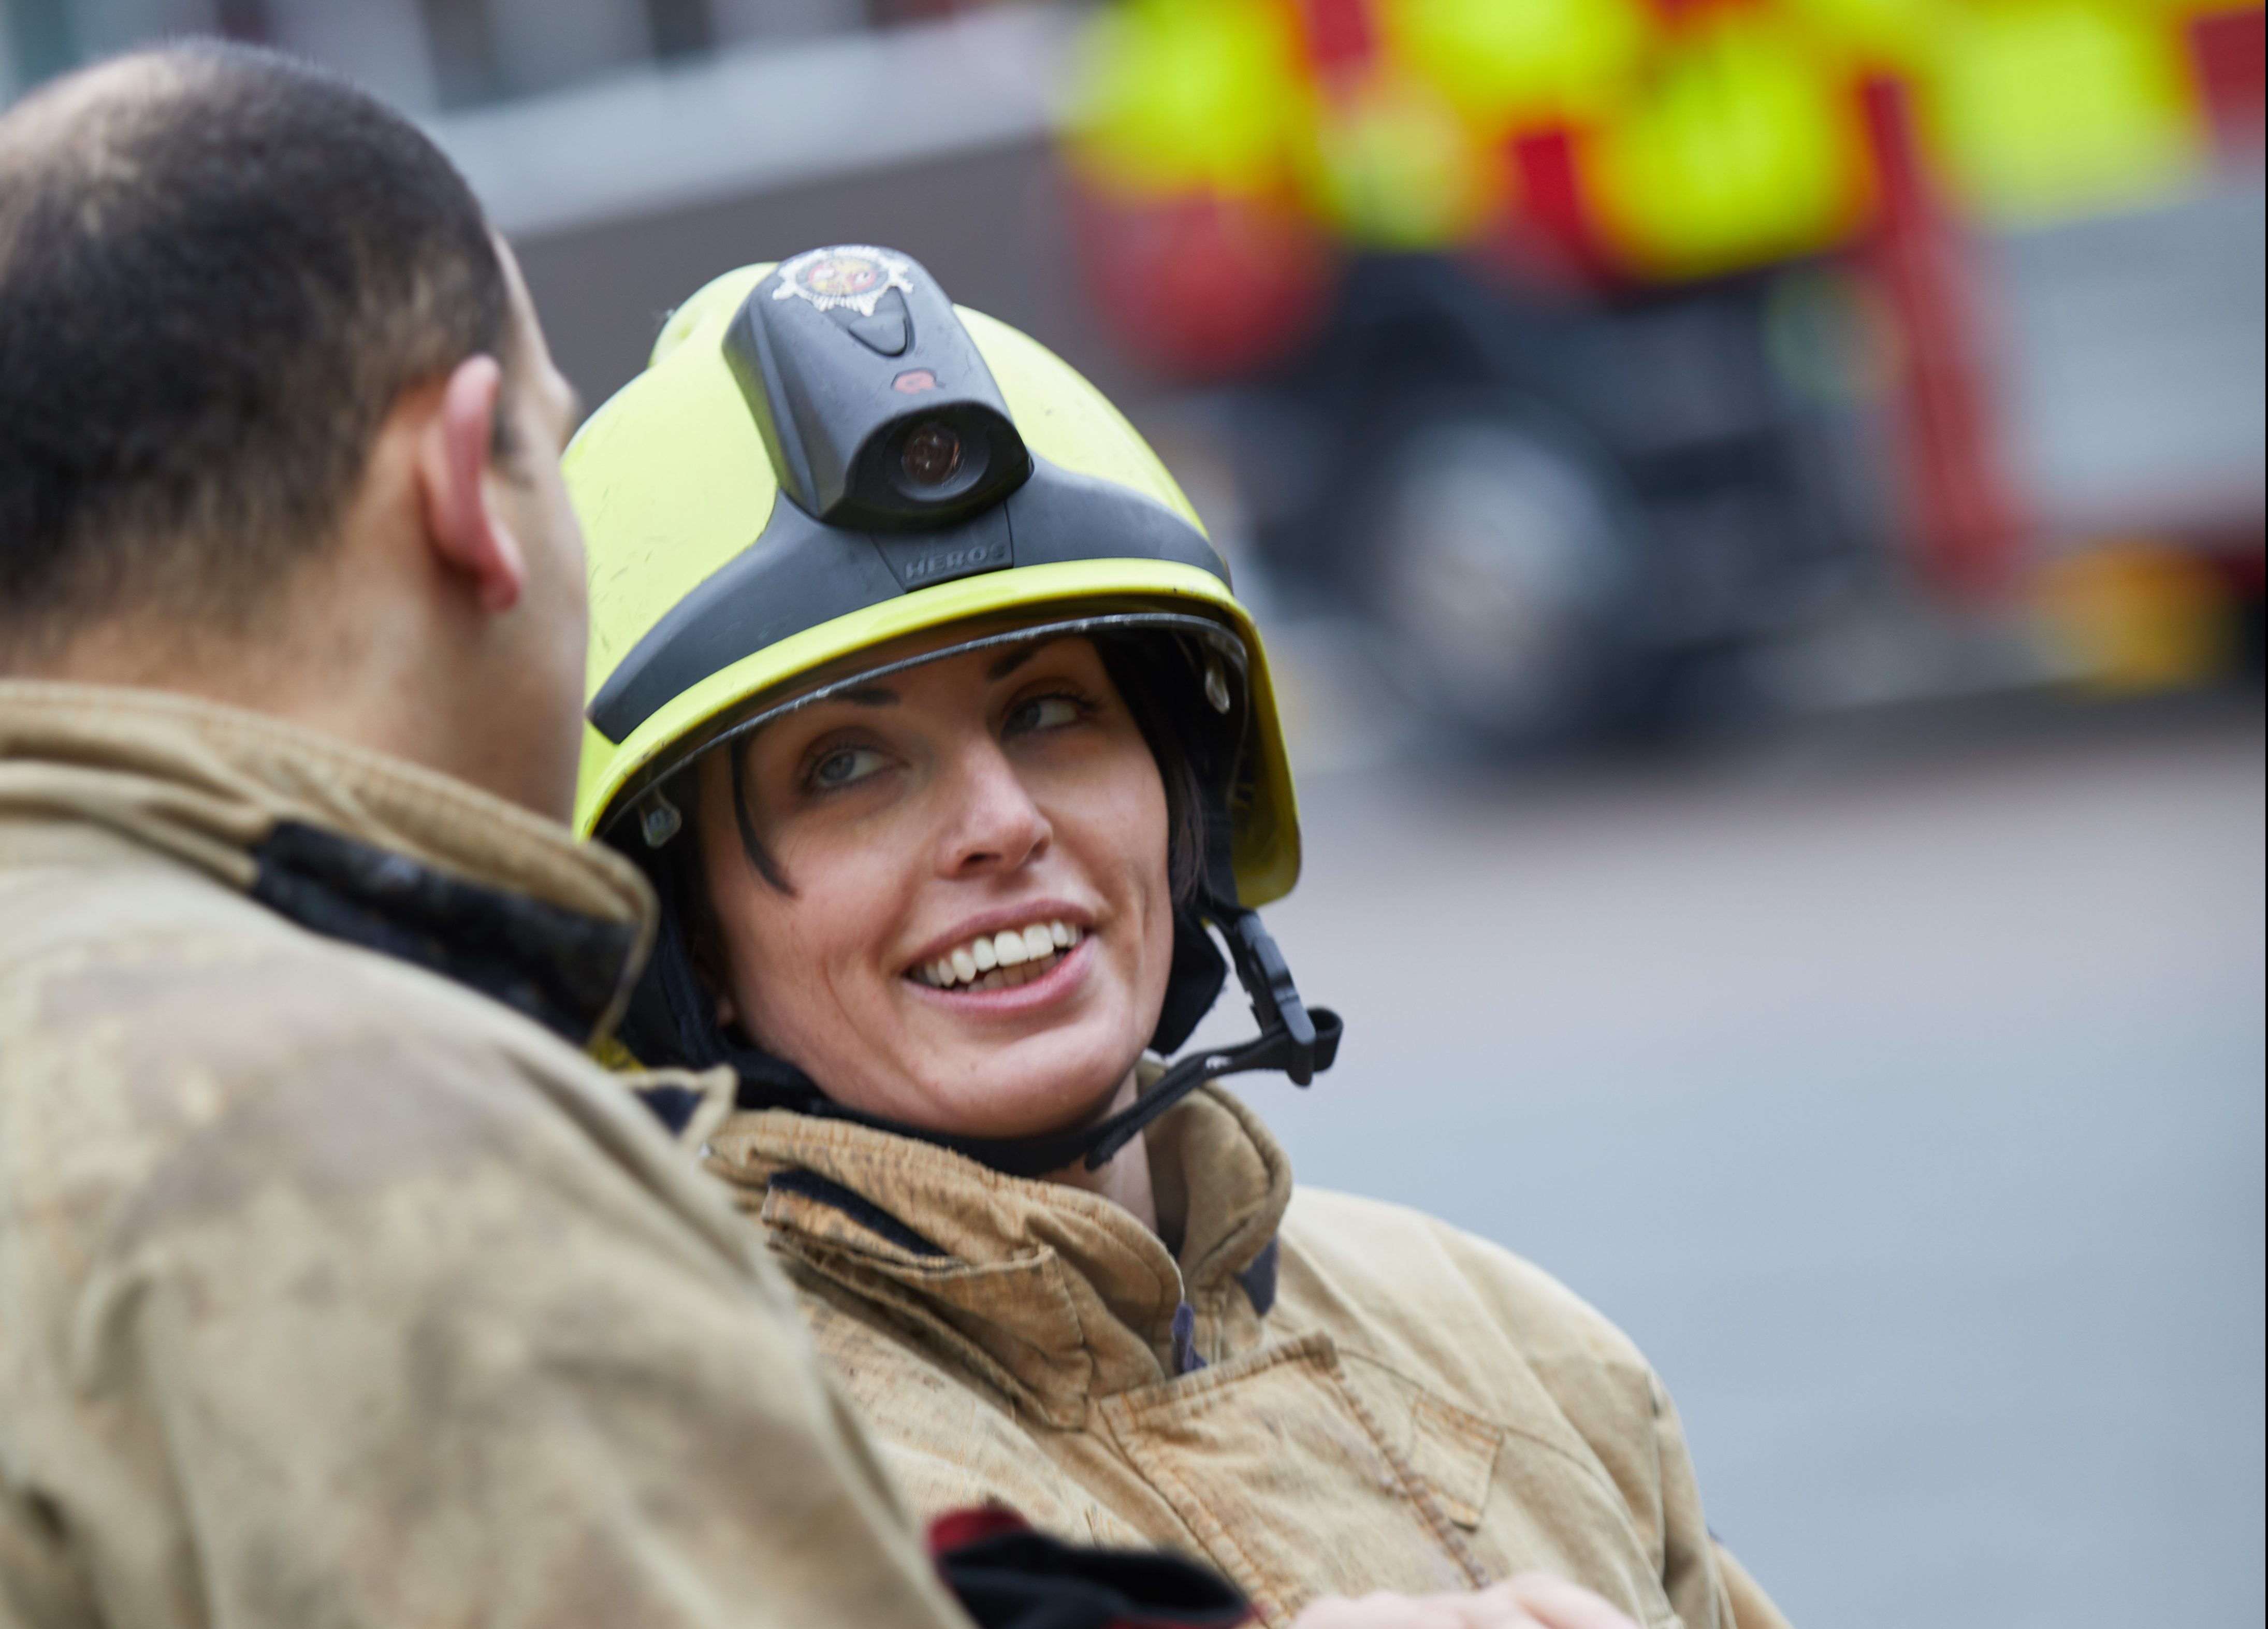 Luton Fire Station – BedfordshireFRS – Action shots (1071)